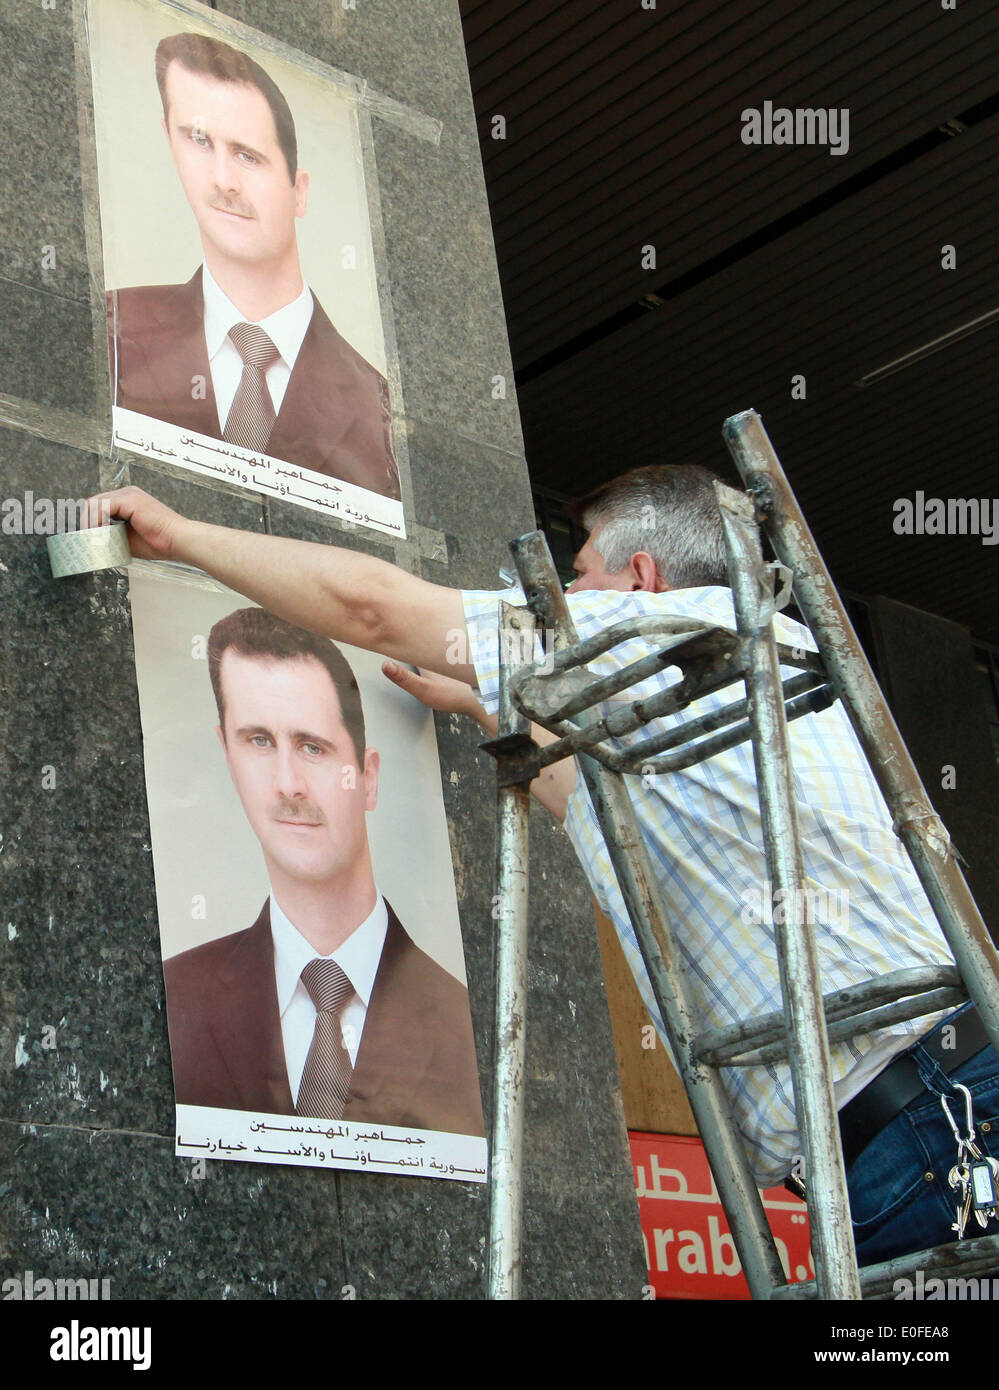 Damascus, Syria. 12th May, 2014. A worker puts up election posters in Damascus, Syria, May 12, 2014. A day earlier, Stock Photo